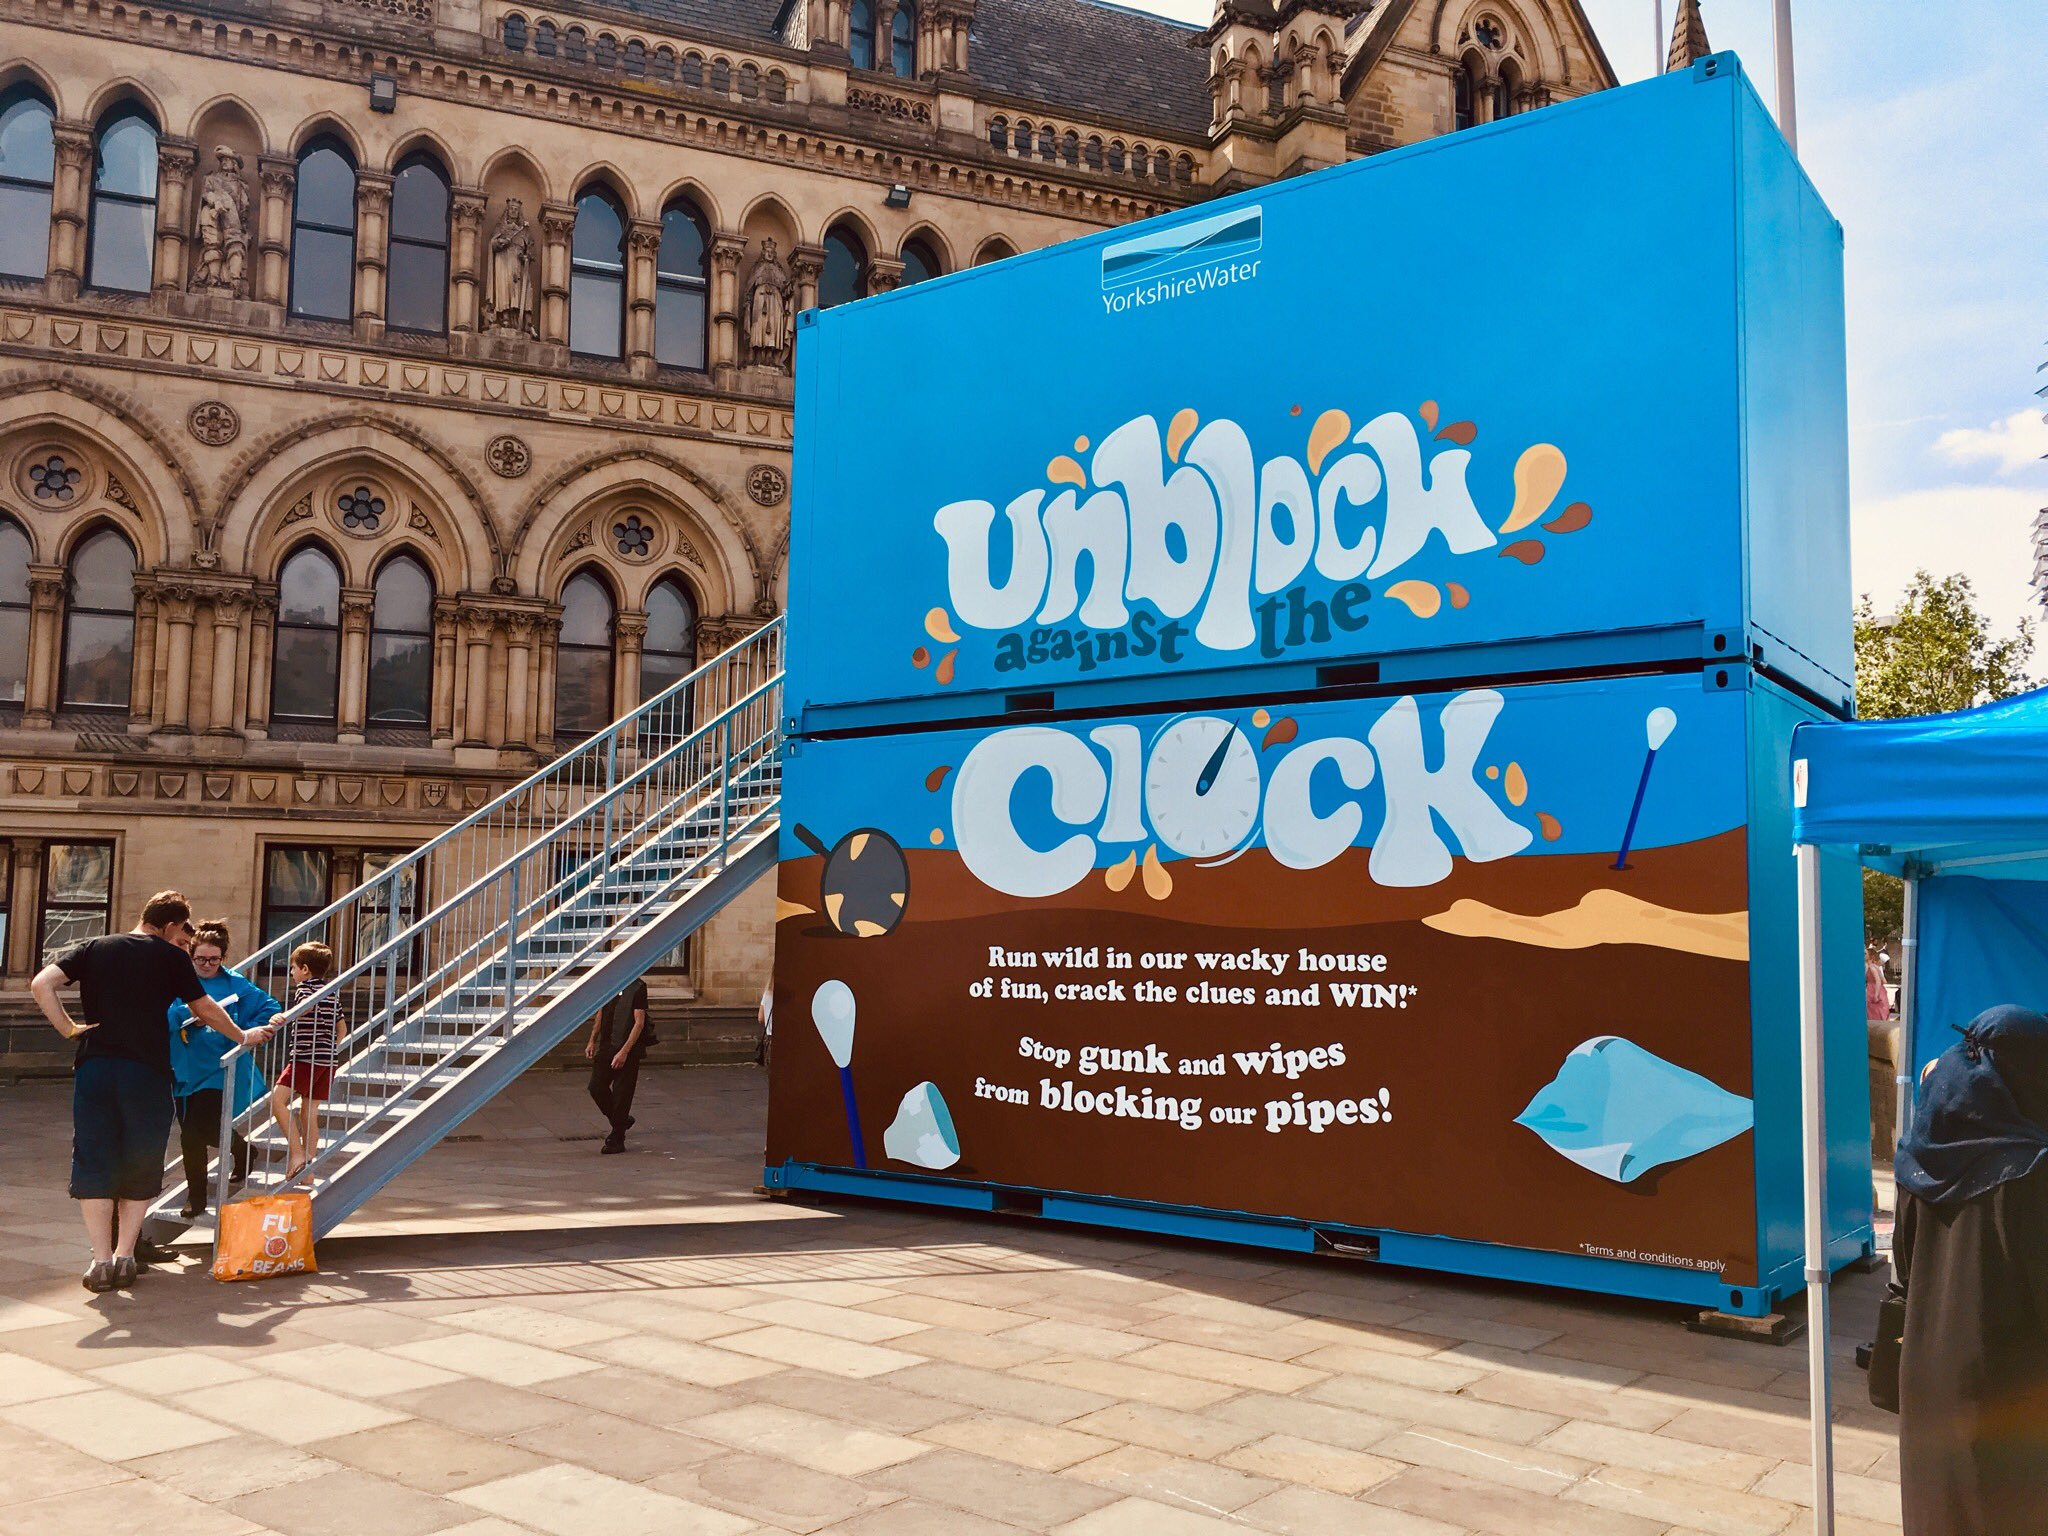 Yorkshire Waters bespoke shipping container brand activation